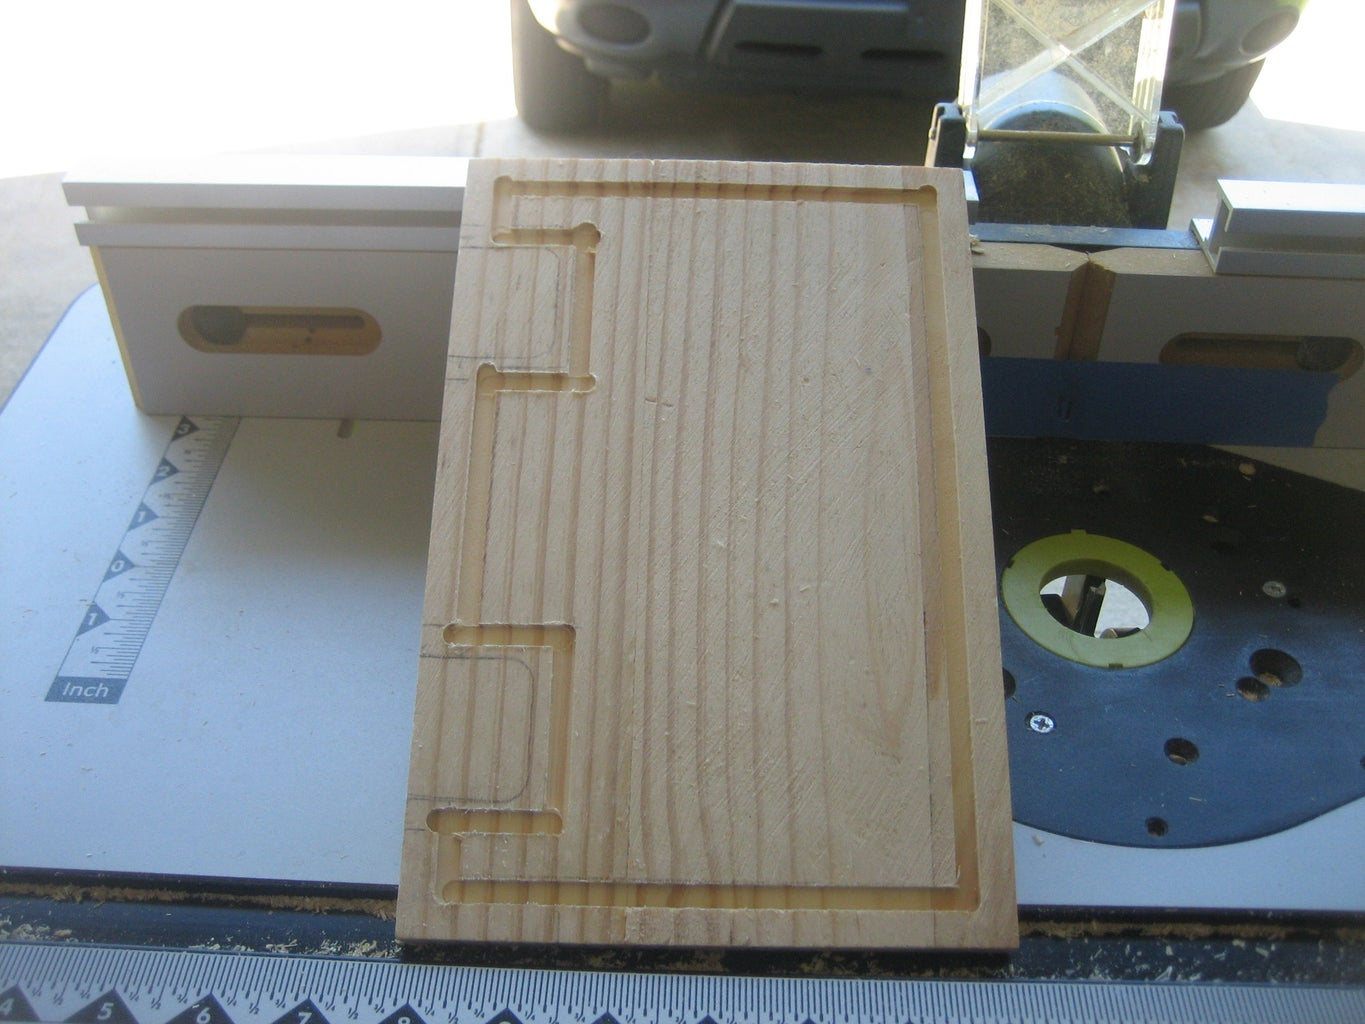 ROUTING THE INLAY GROOVES